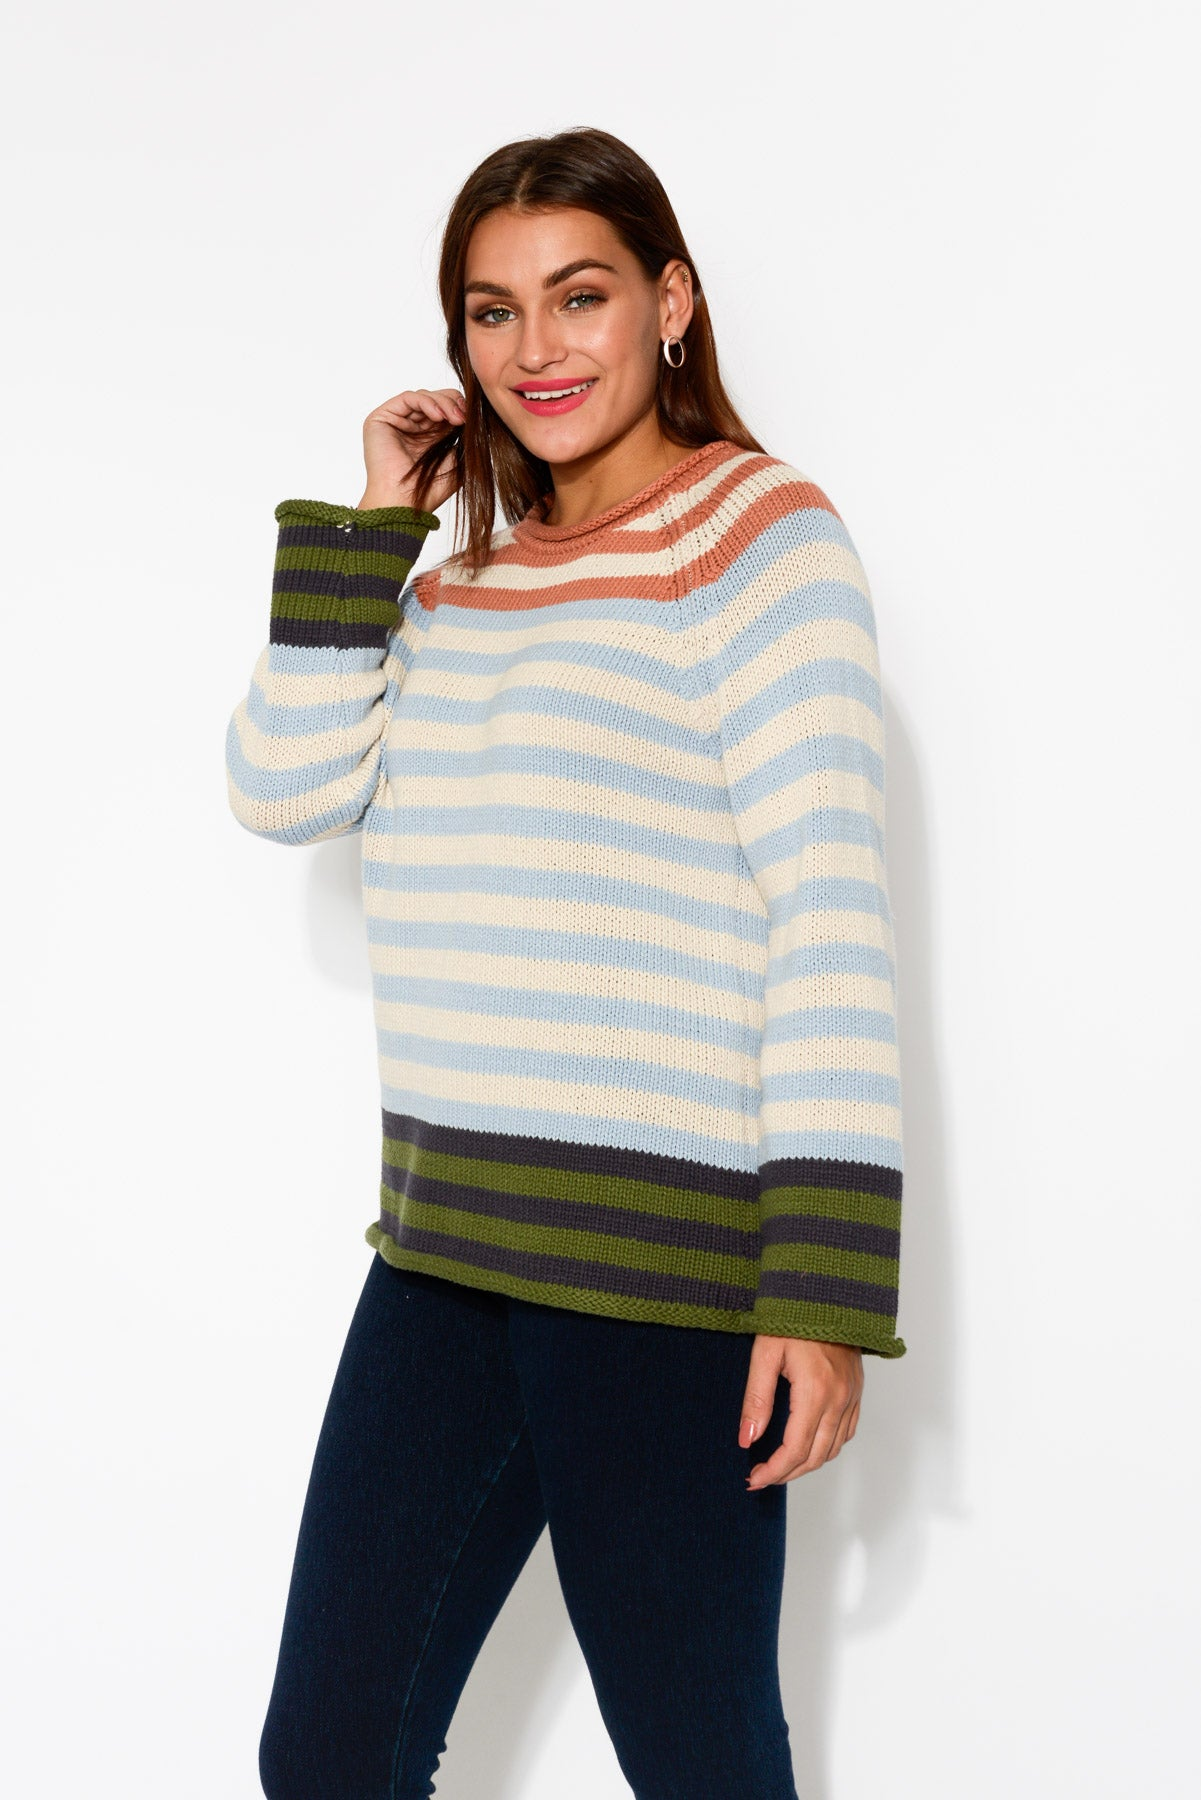 Margo Blue Stripe Knit Jumper - Blue Bungalow